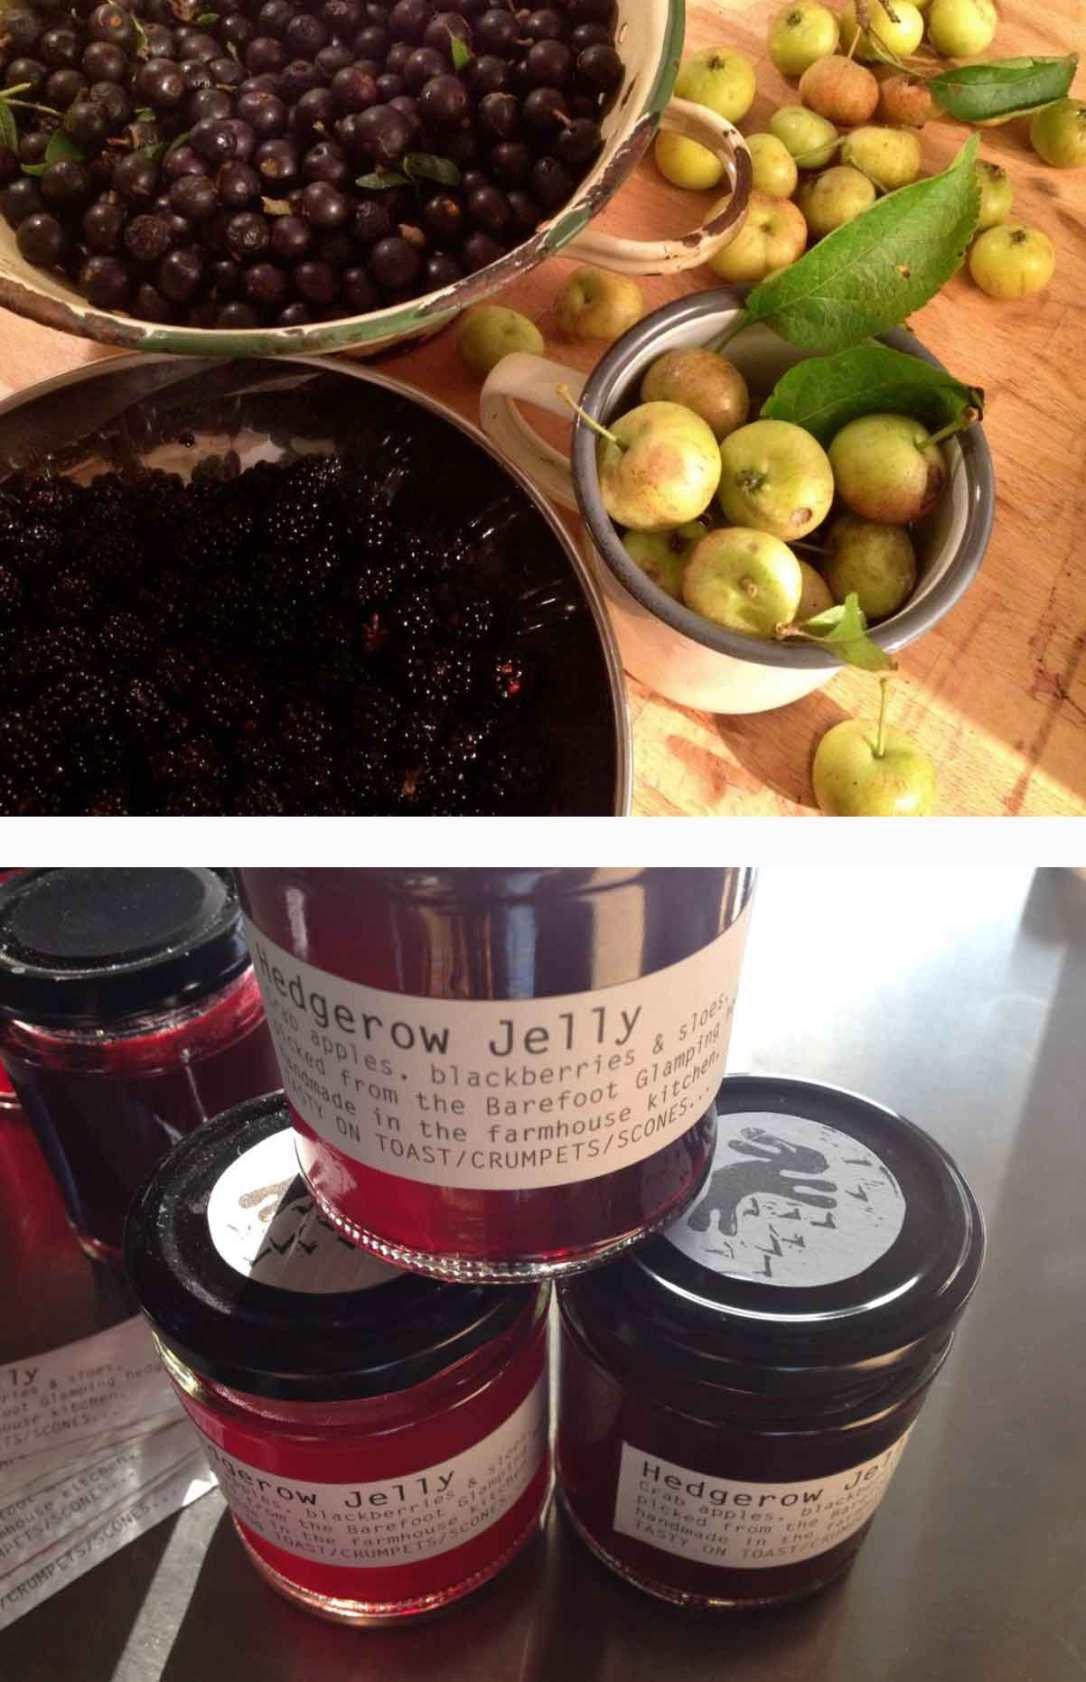 foraged sloe berries, blackberries and crab apples with jars of hedgerow jelly made at barefoot glamping Cornwall